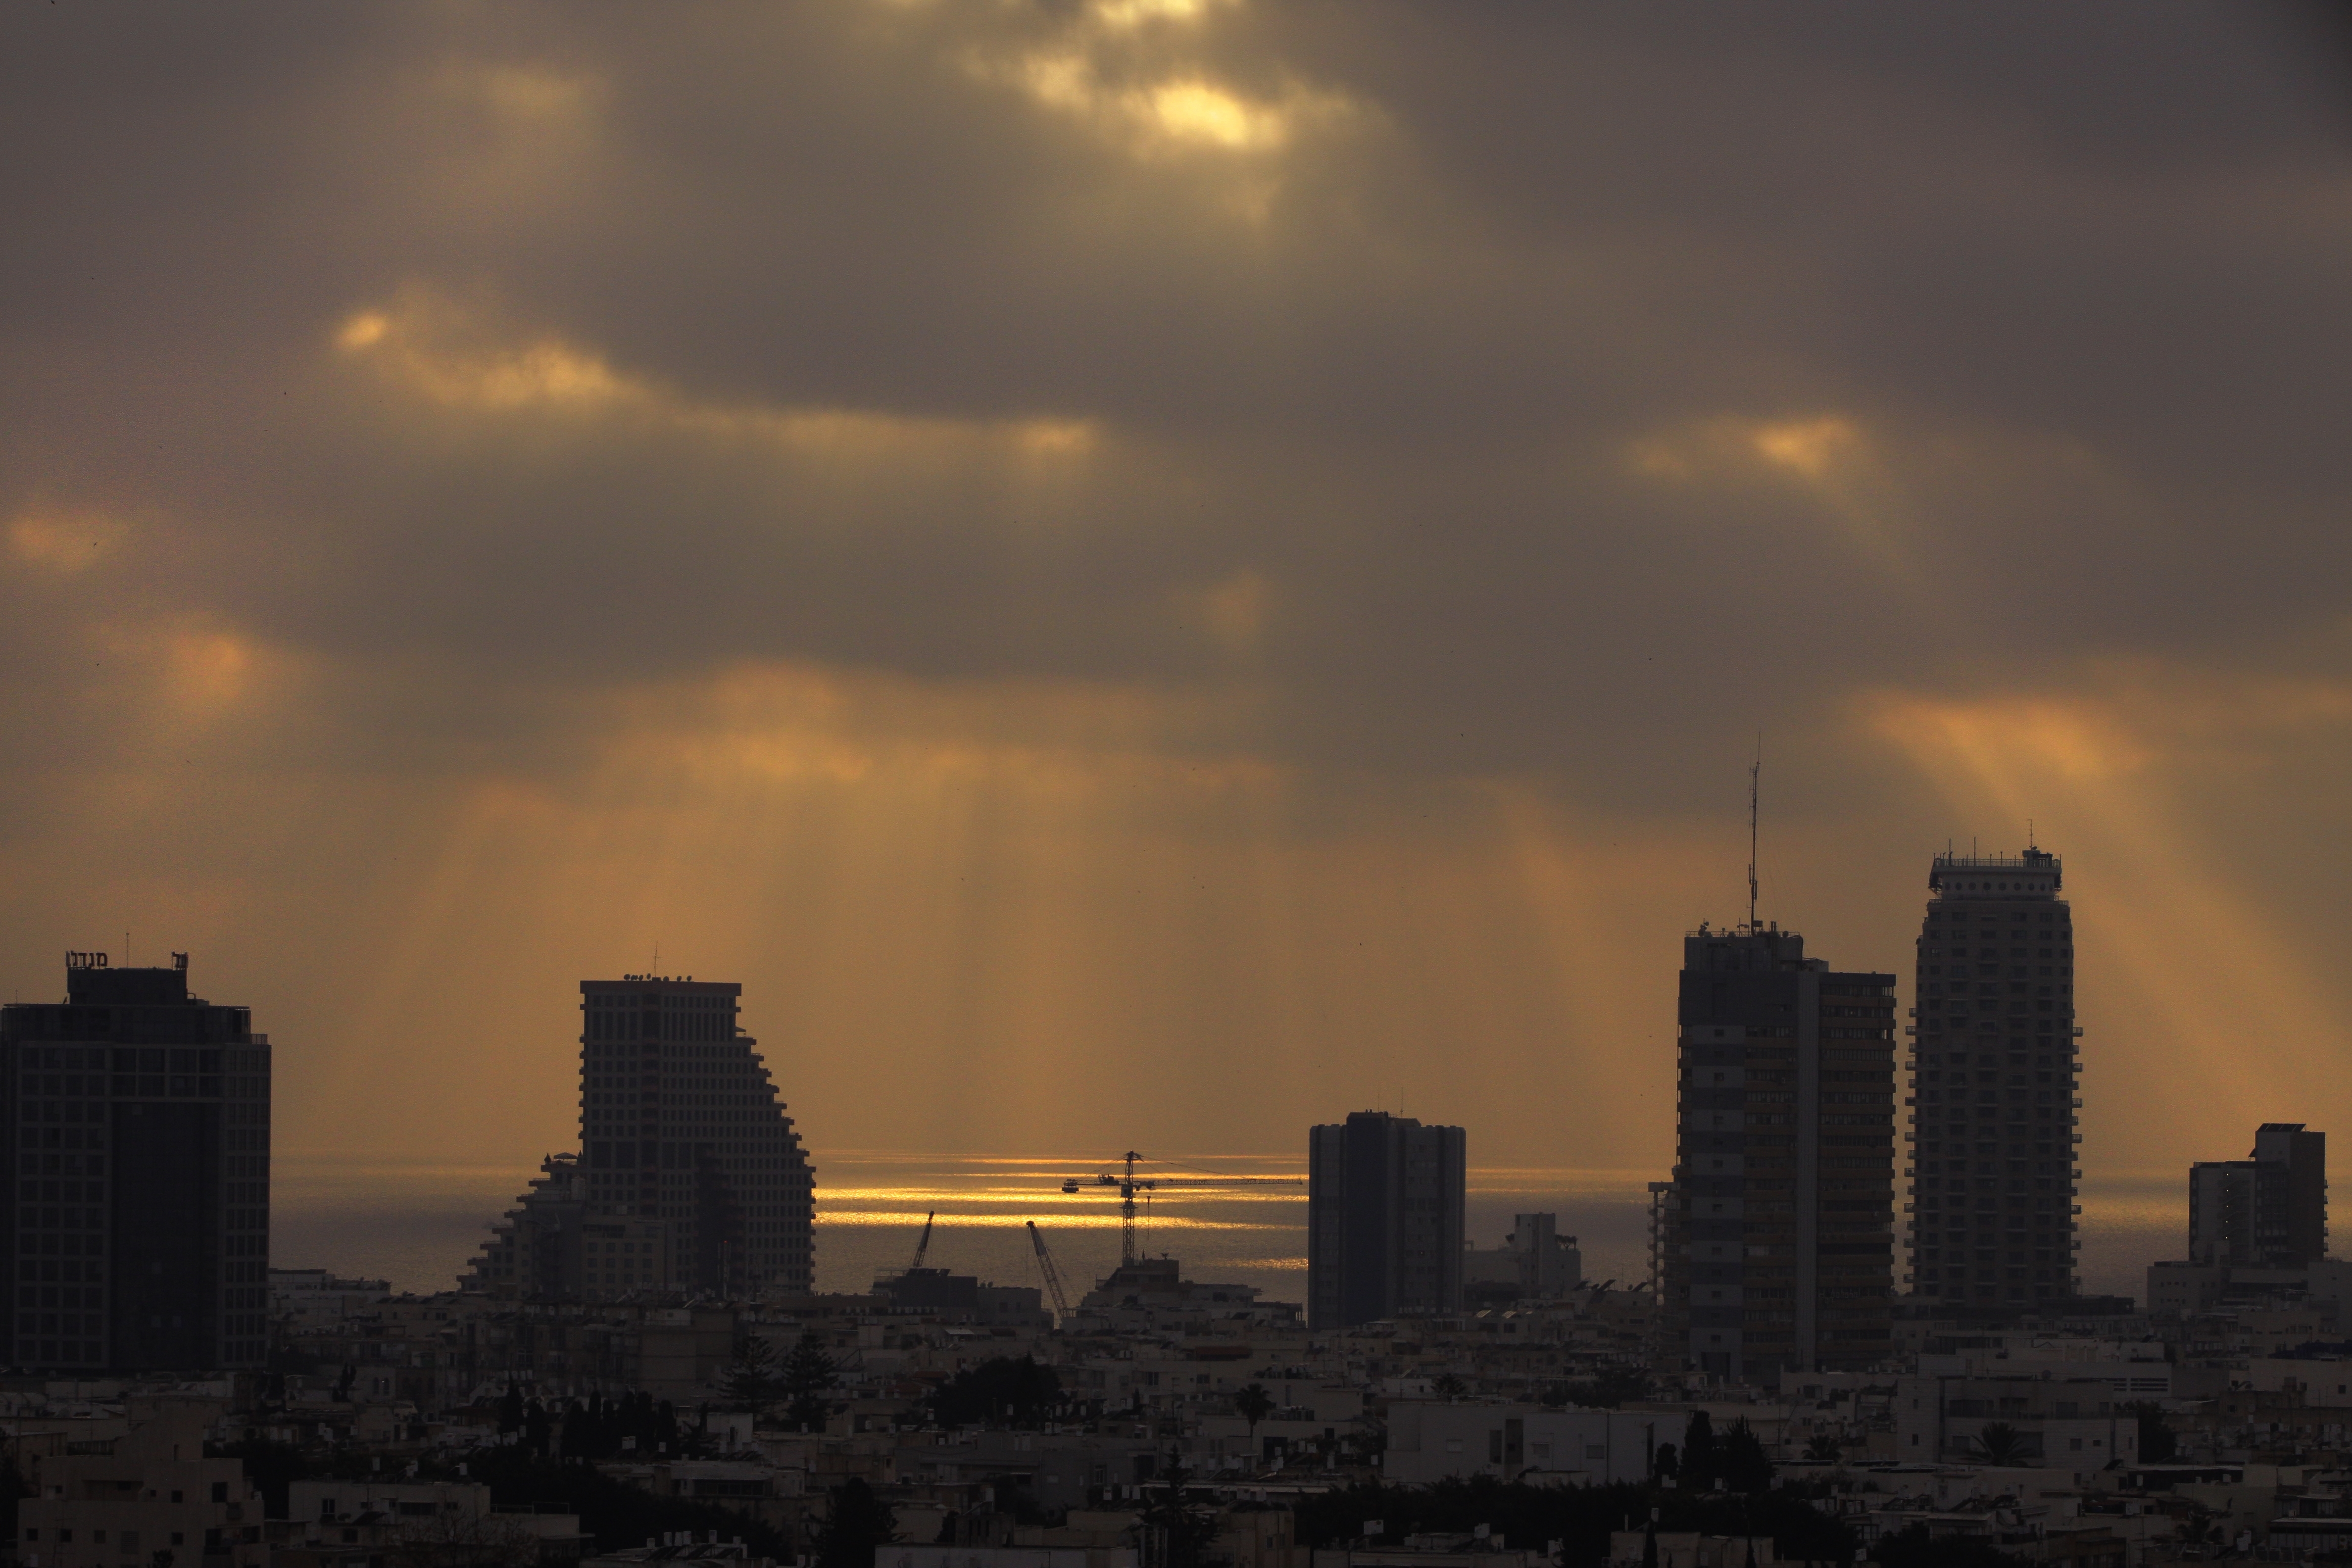 View of the Mediterranean Sea from the oncology ward of Tel Aviv Medical Center at sunset.